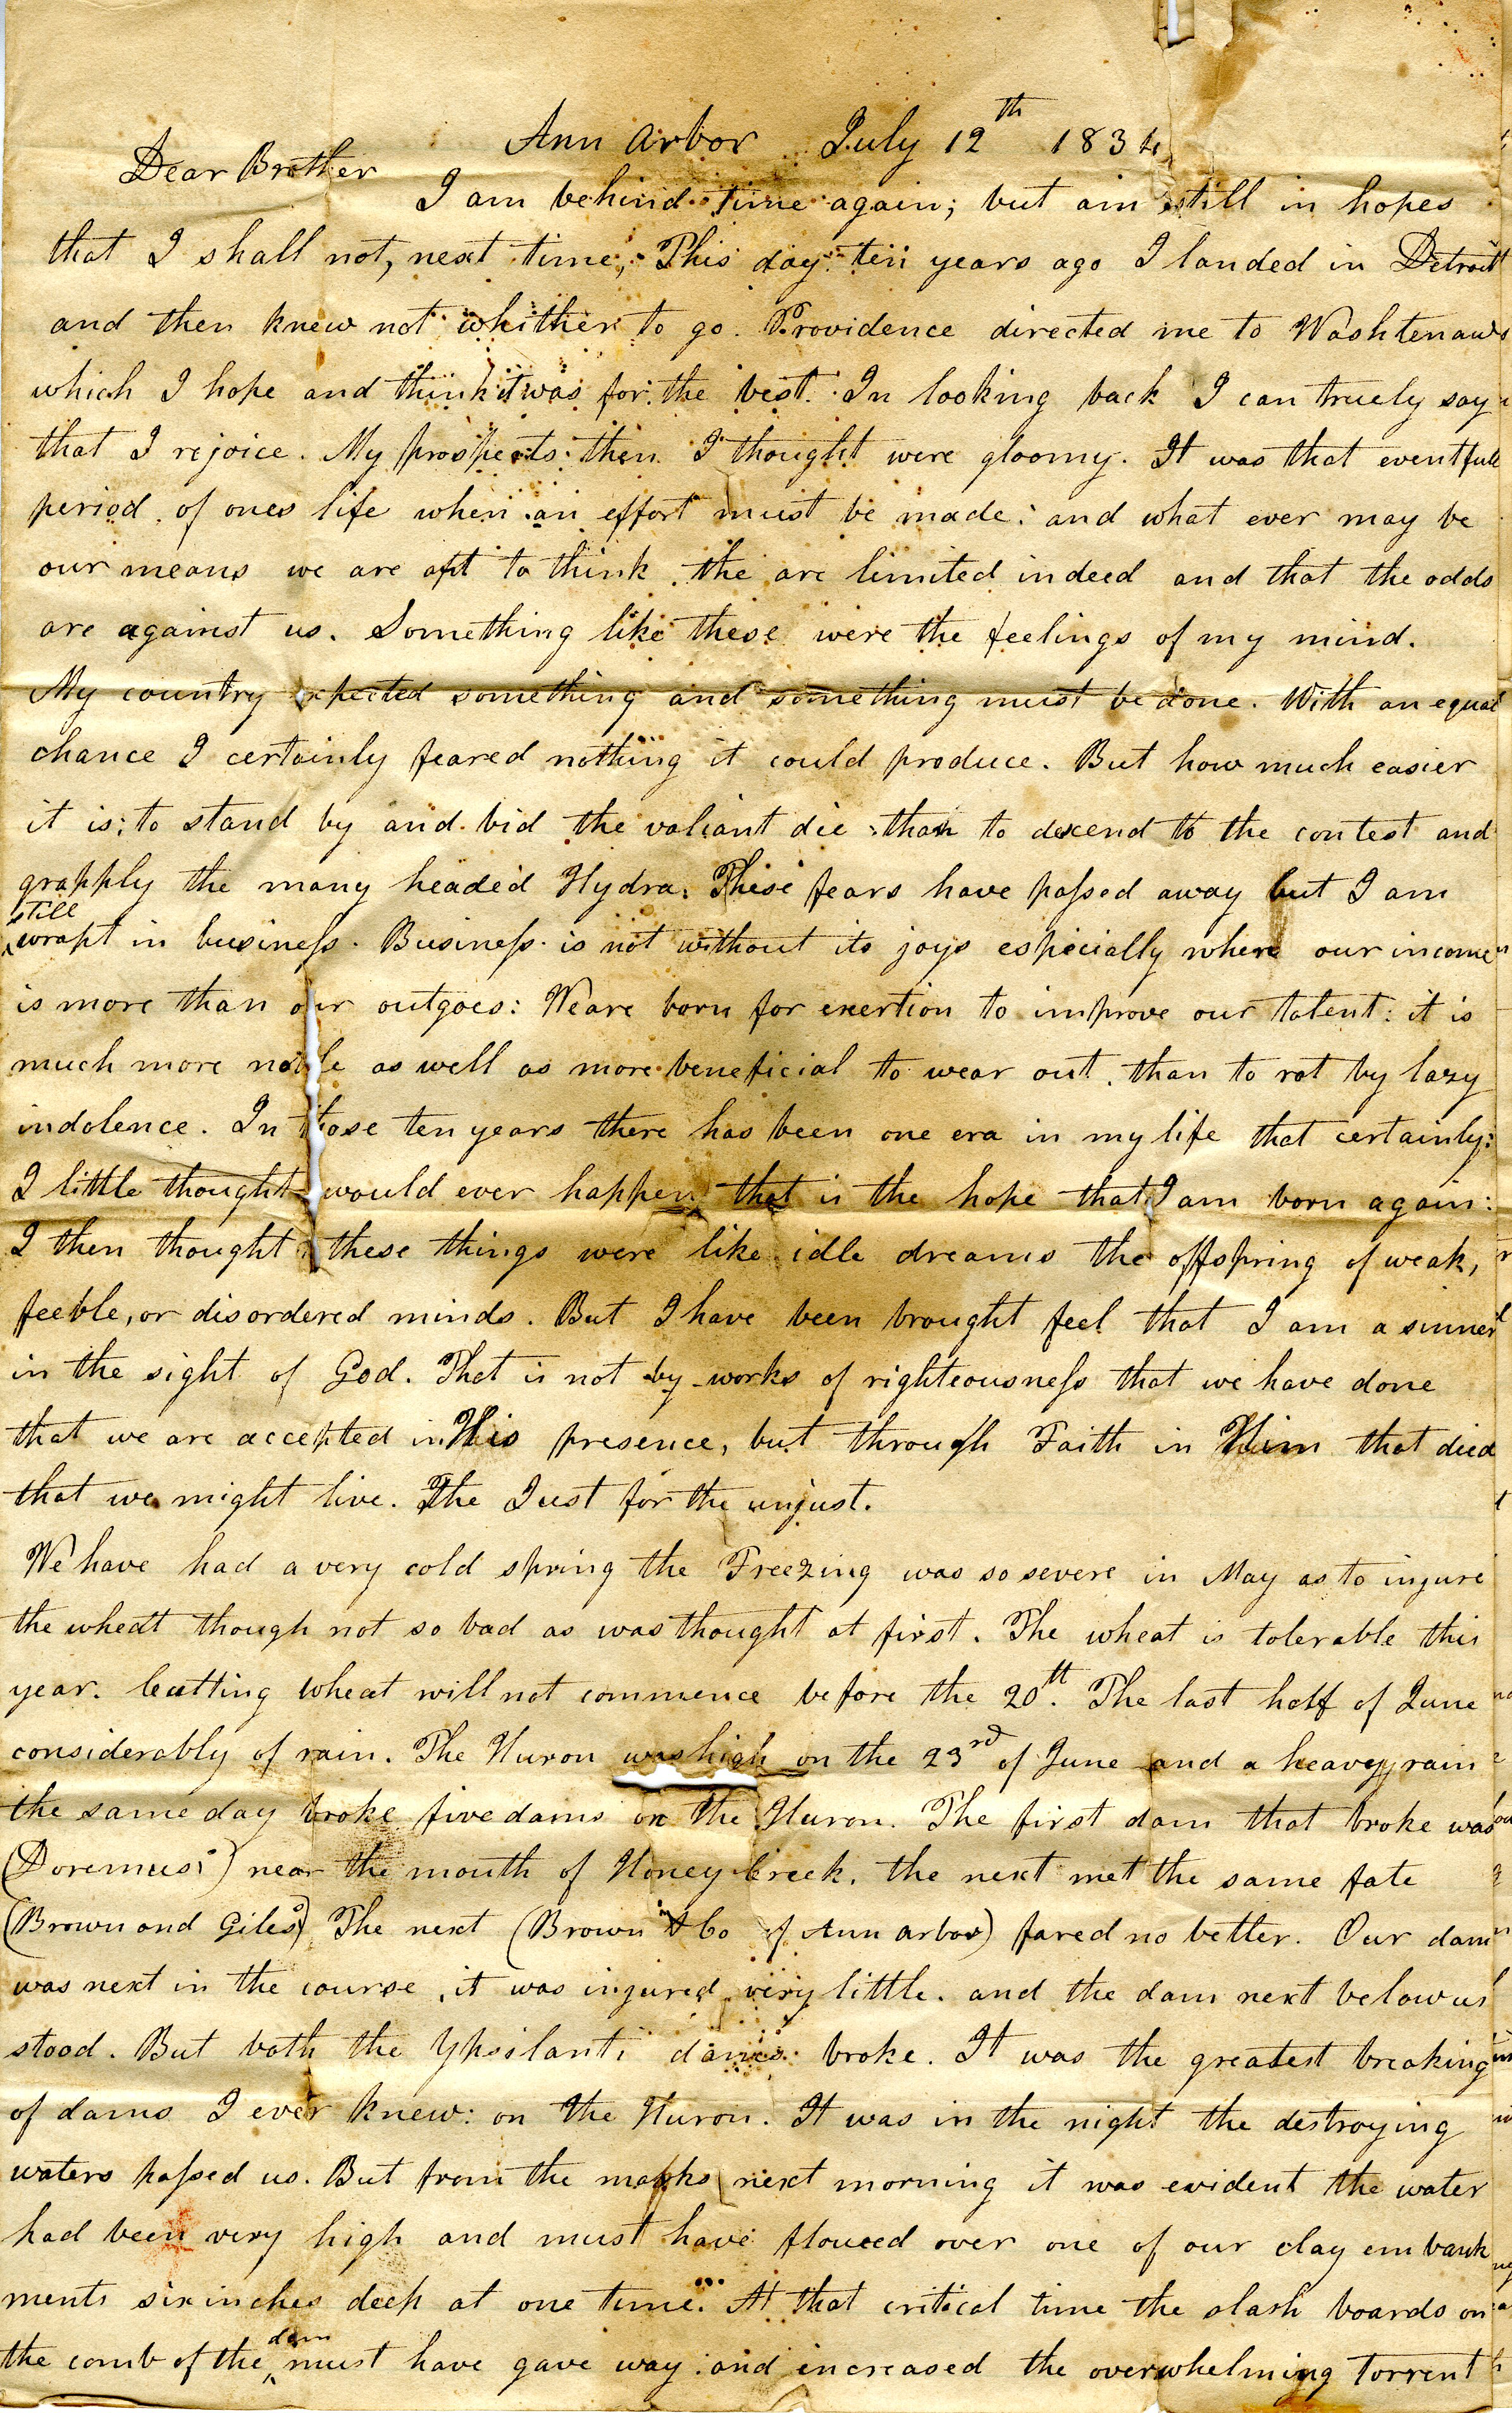 Letter From John Geddes to William Geddes, July 12, 1834 image